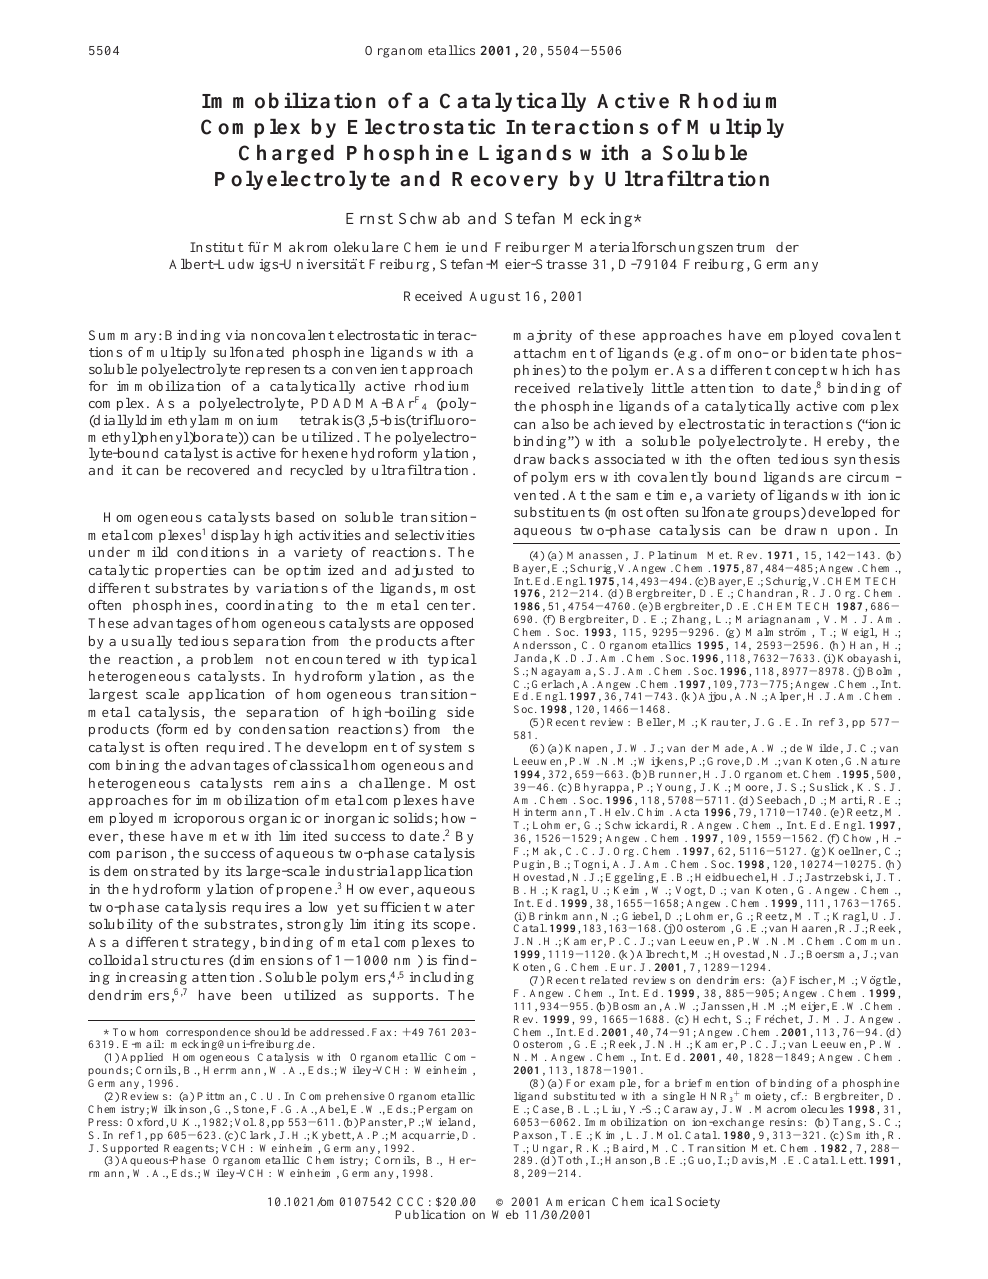 Immobilization Of A Catalytically Active Rhodium Complex By Electrostatic Interactions Of Multiply Charged Phosphine Ligands With A Soluble Polyelectrolyte And Recovery By Ultrafiltration Topic Of Research Paper In Chemical Sciences Download